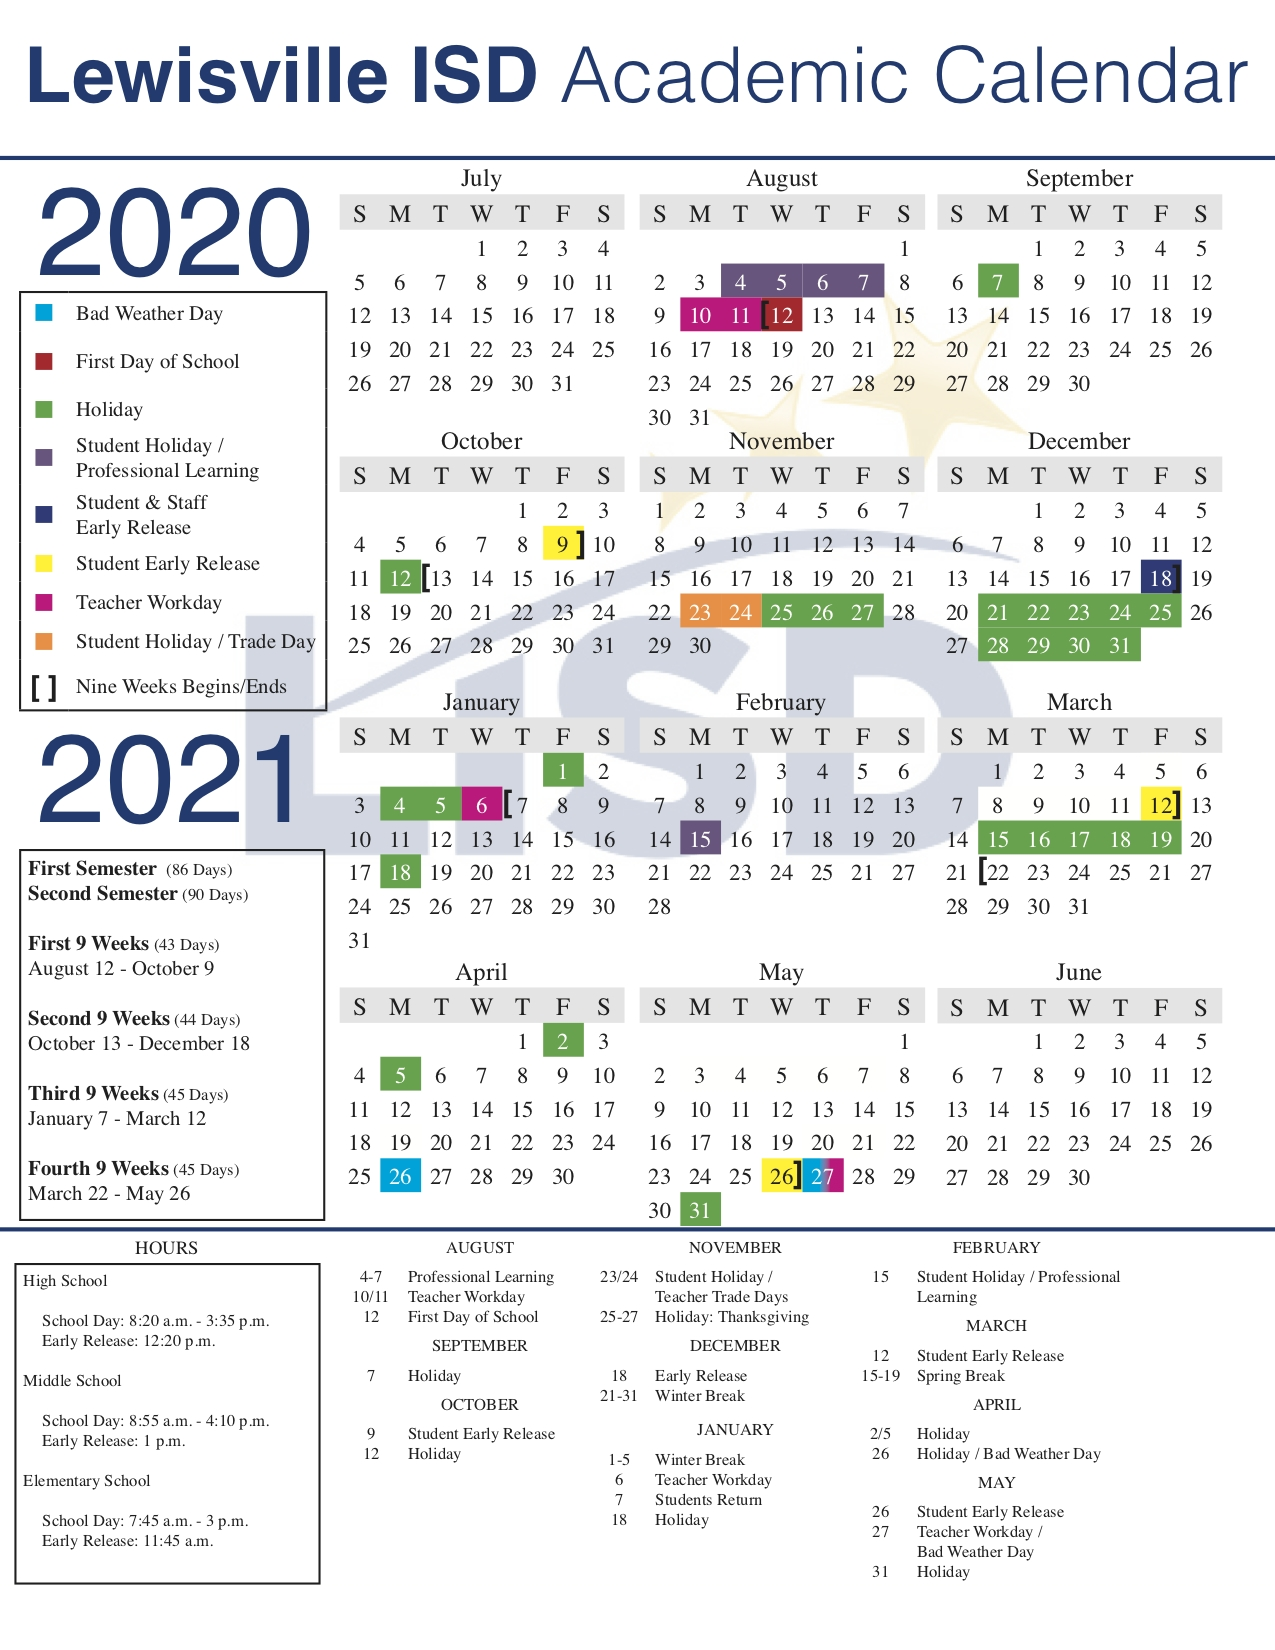 Leap Year Julian Calendar | Printable Calendar 2020-2021